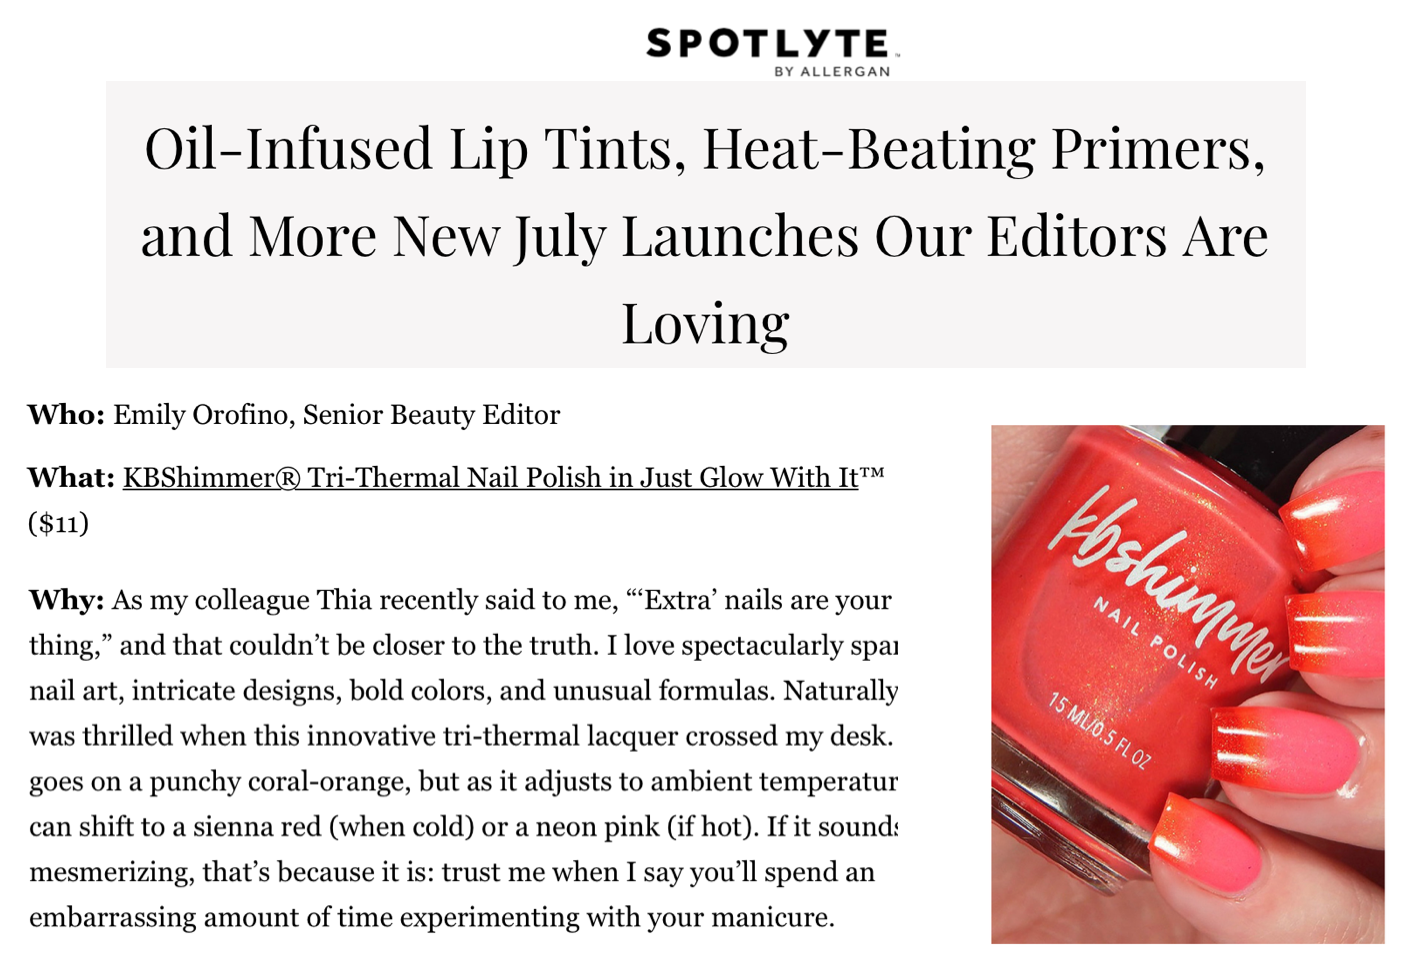 The Spotlyte 7.10.19.png